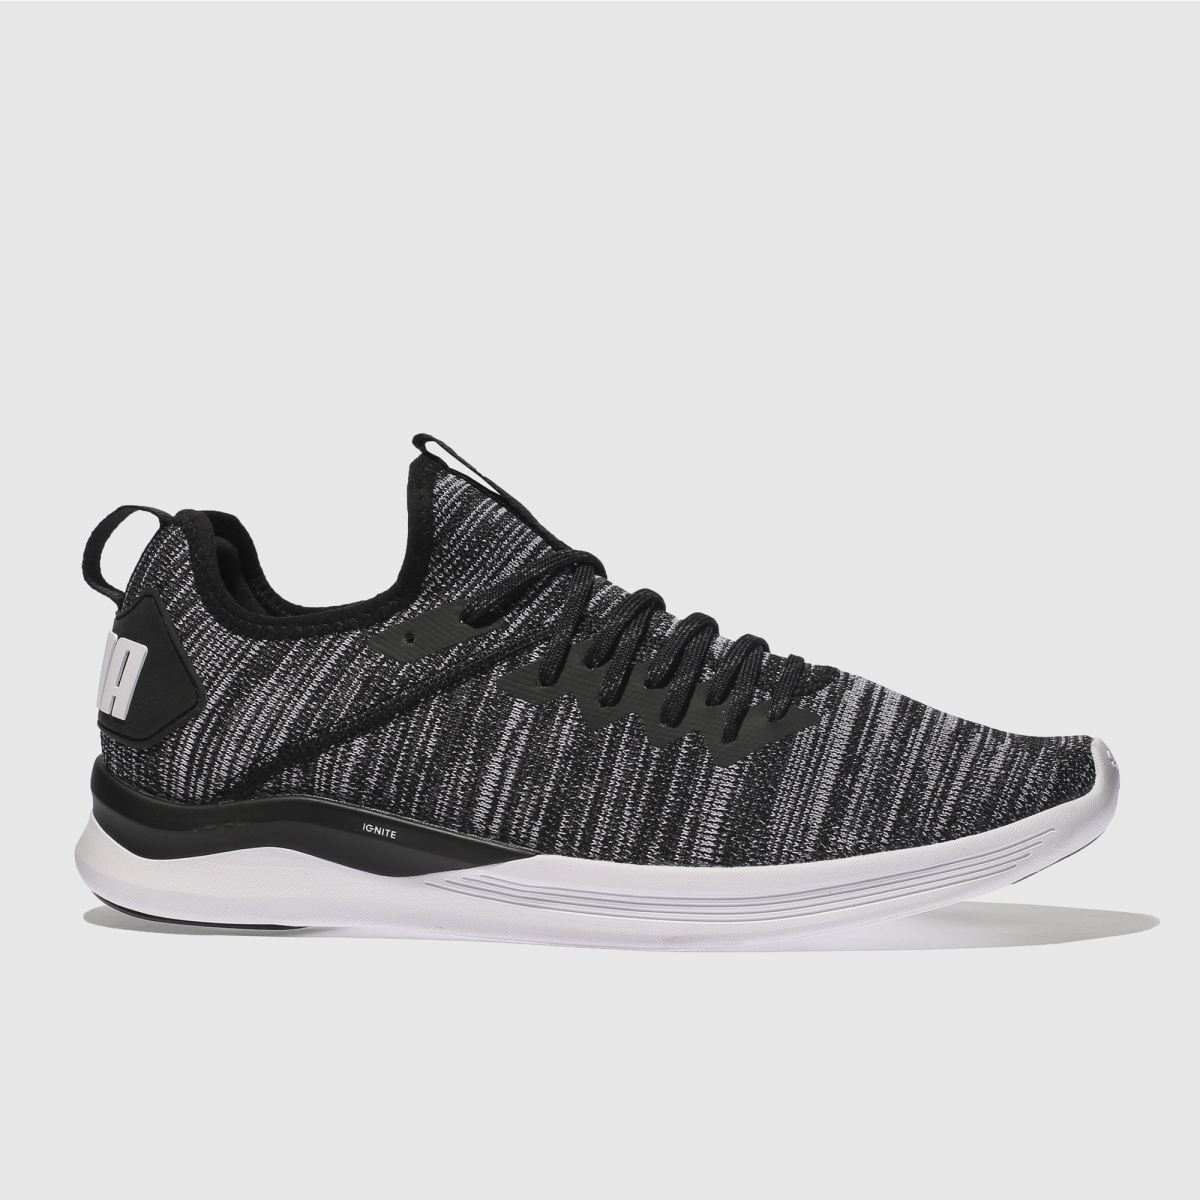 Puma Black & White Ignite Flash Evoknit Trainers